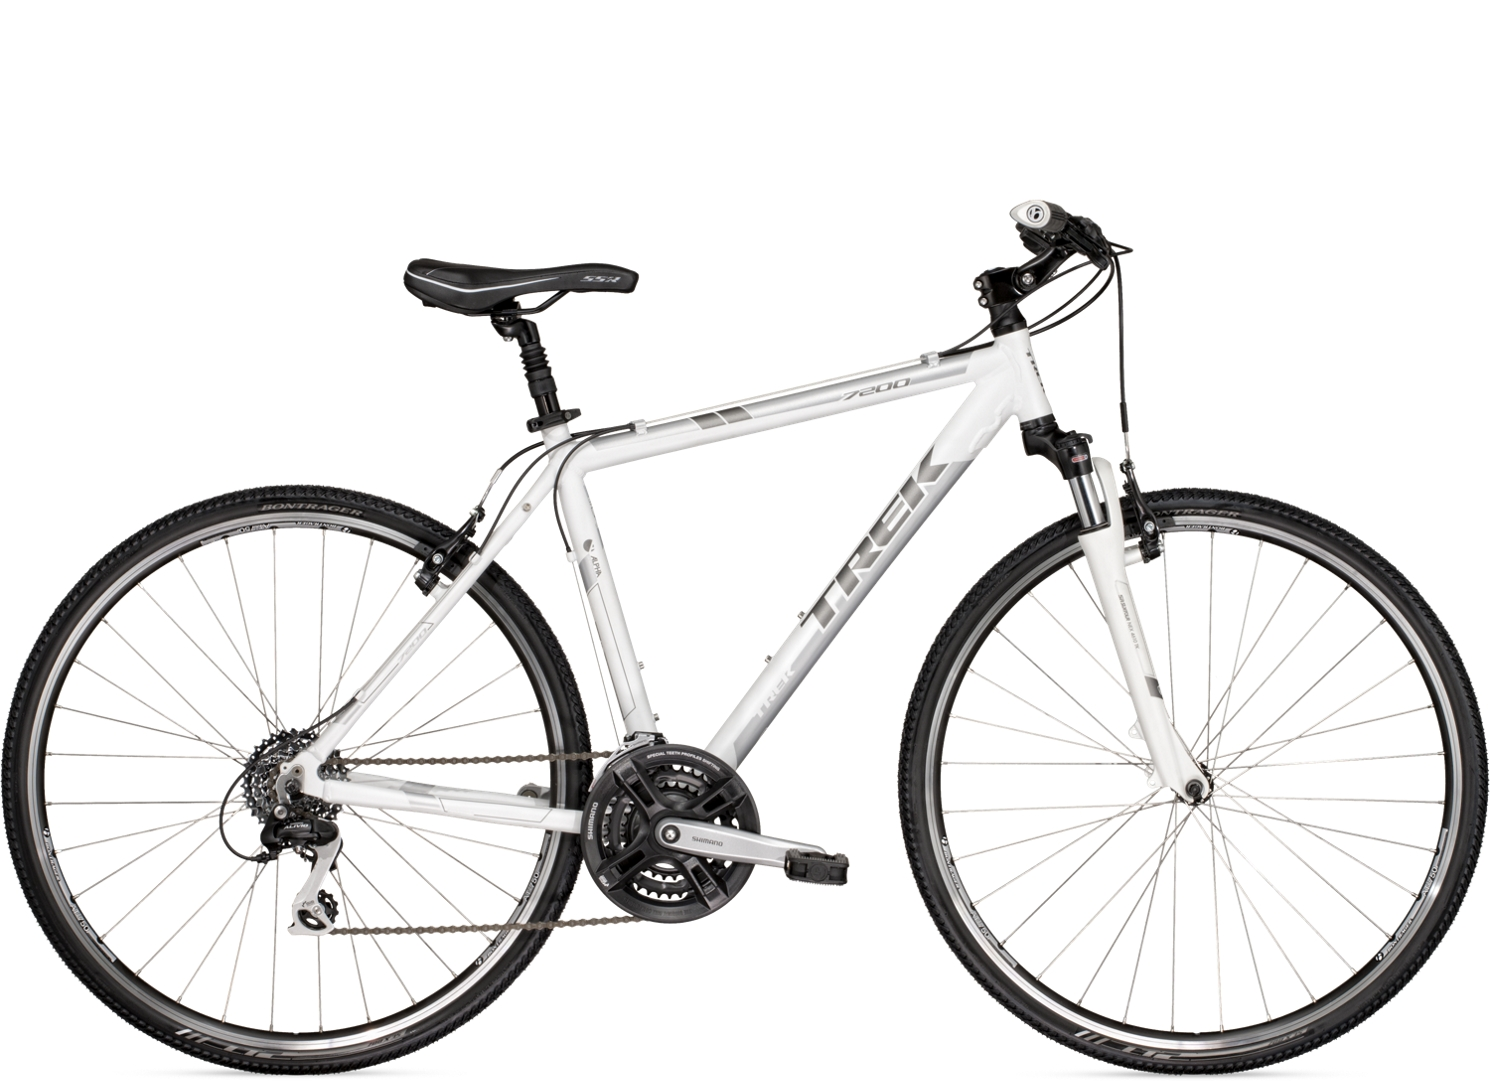 2012 7200 E Bike Archive Trek Bicycle